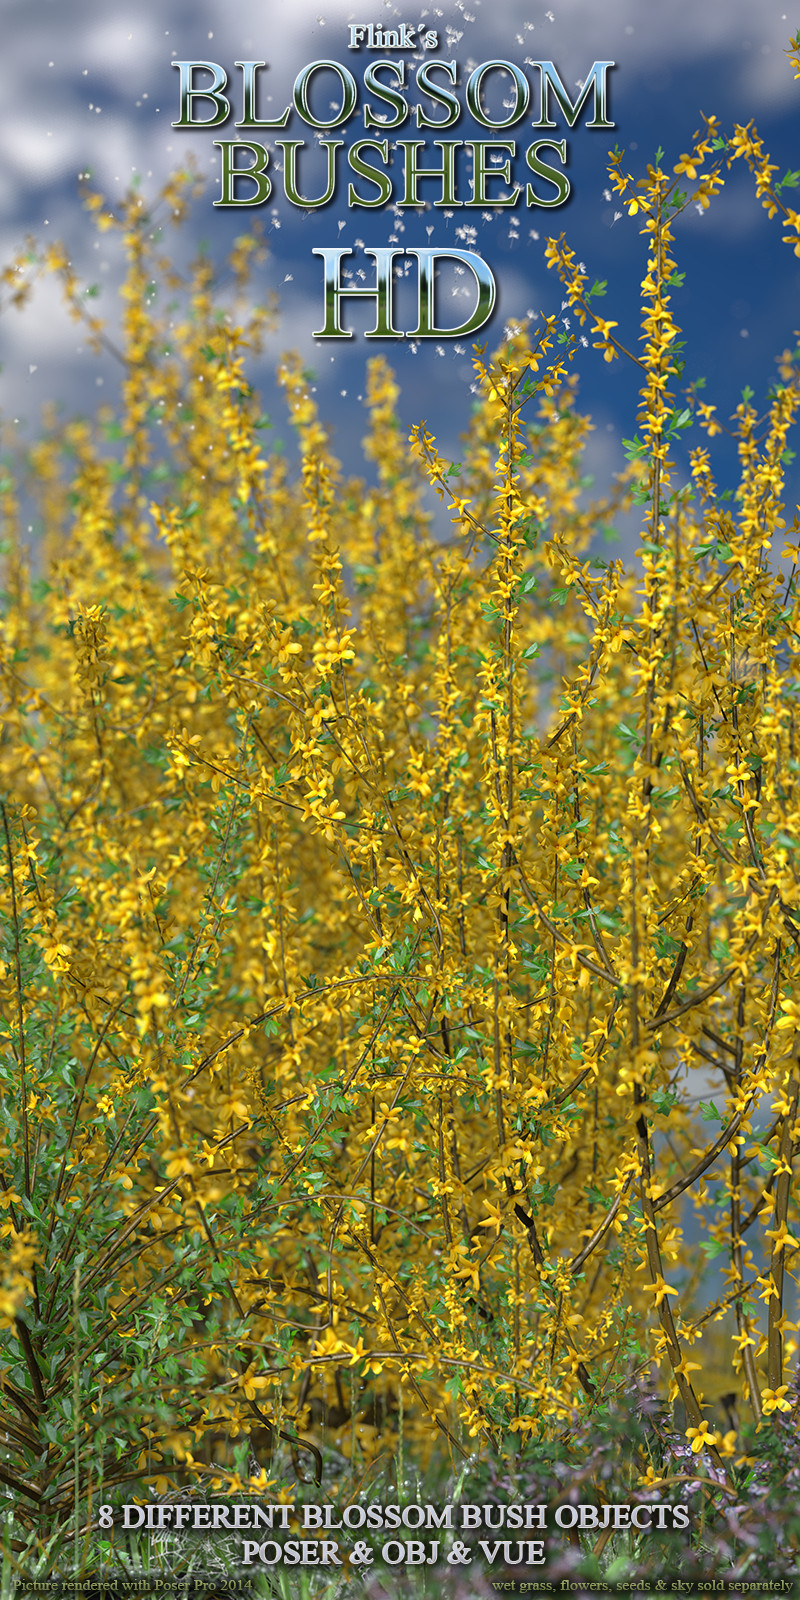 Flinks Blossom Bushes HD